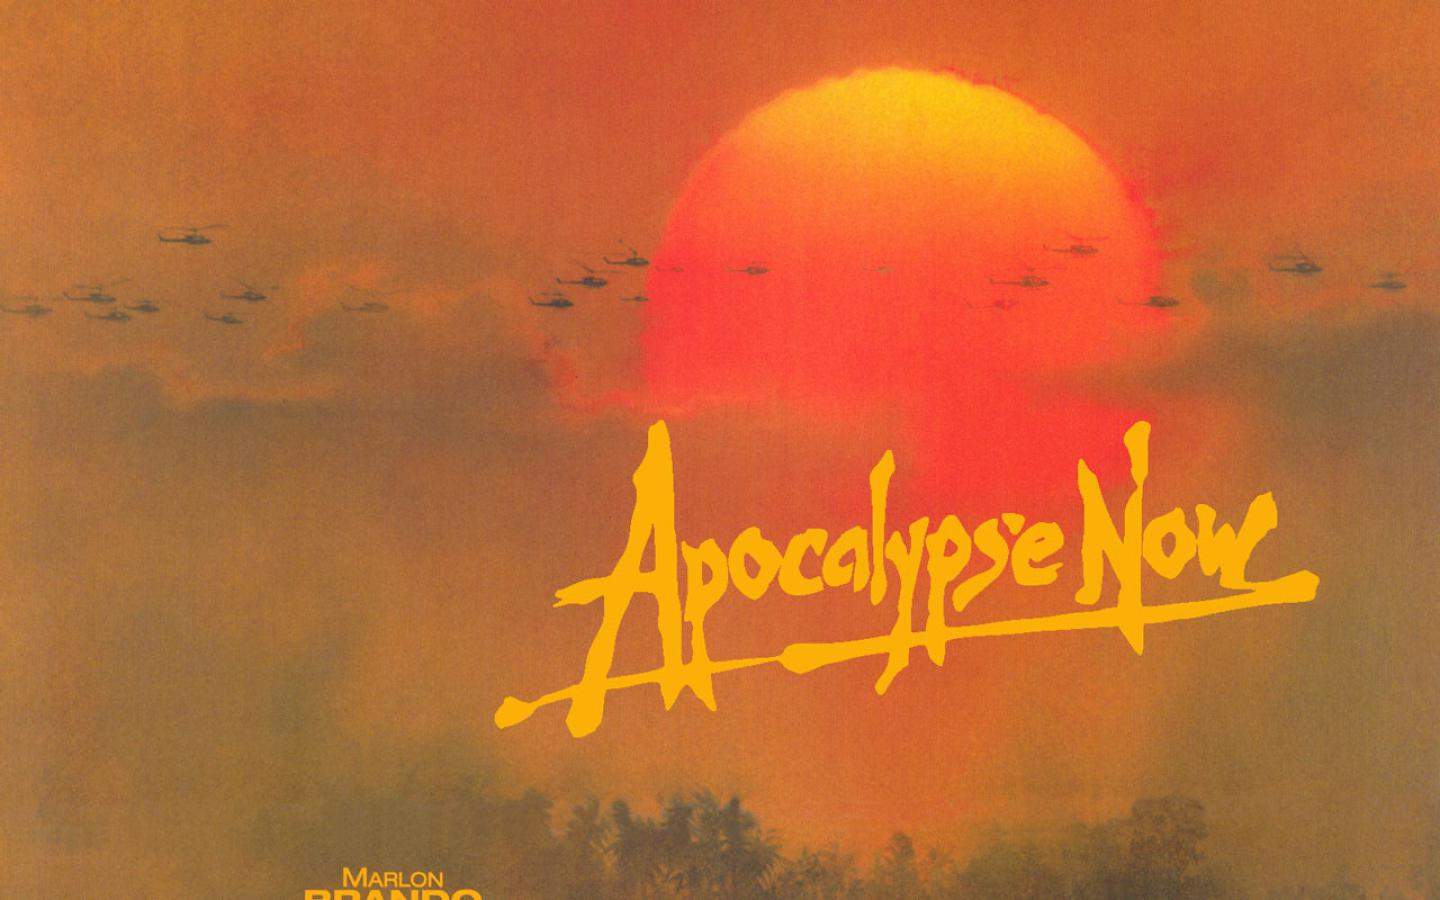 Best movie   Apocalypse Now 1440x900 Wallpaper 2 1440x900